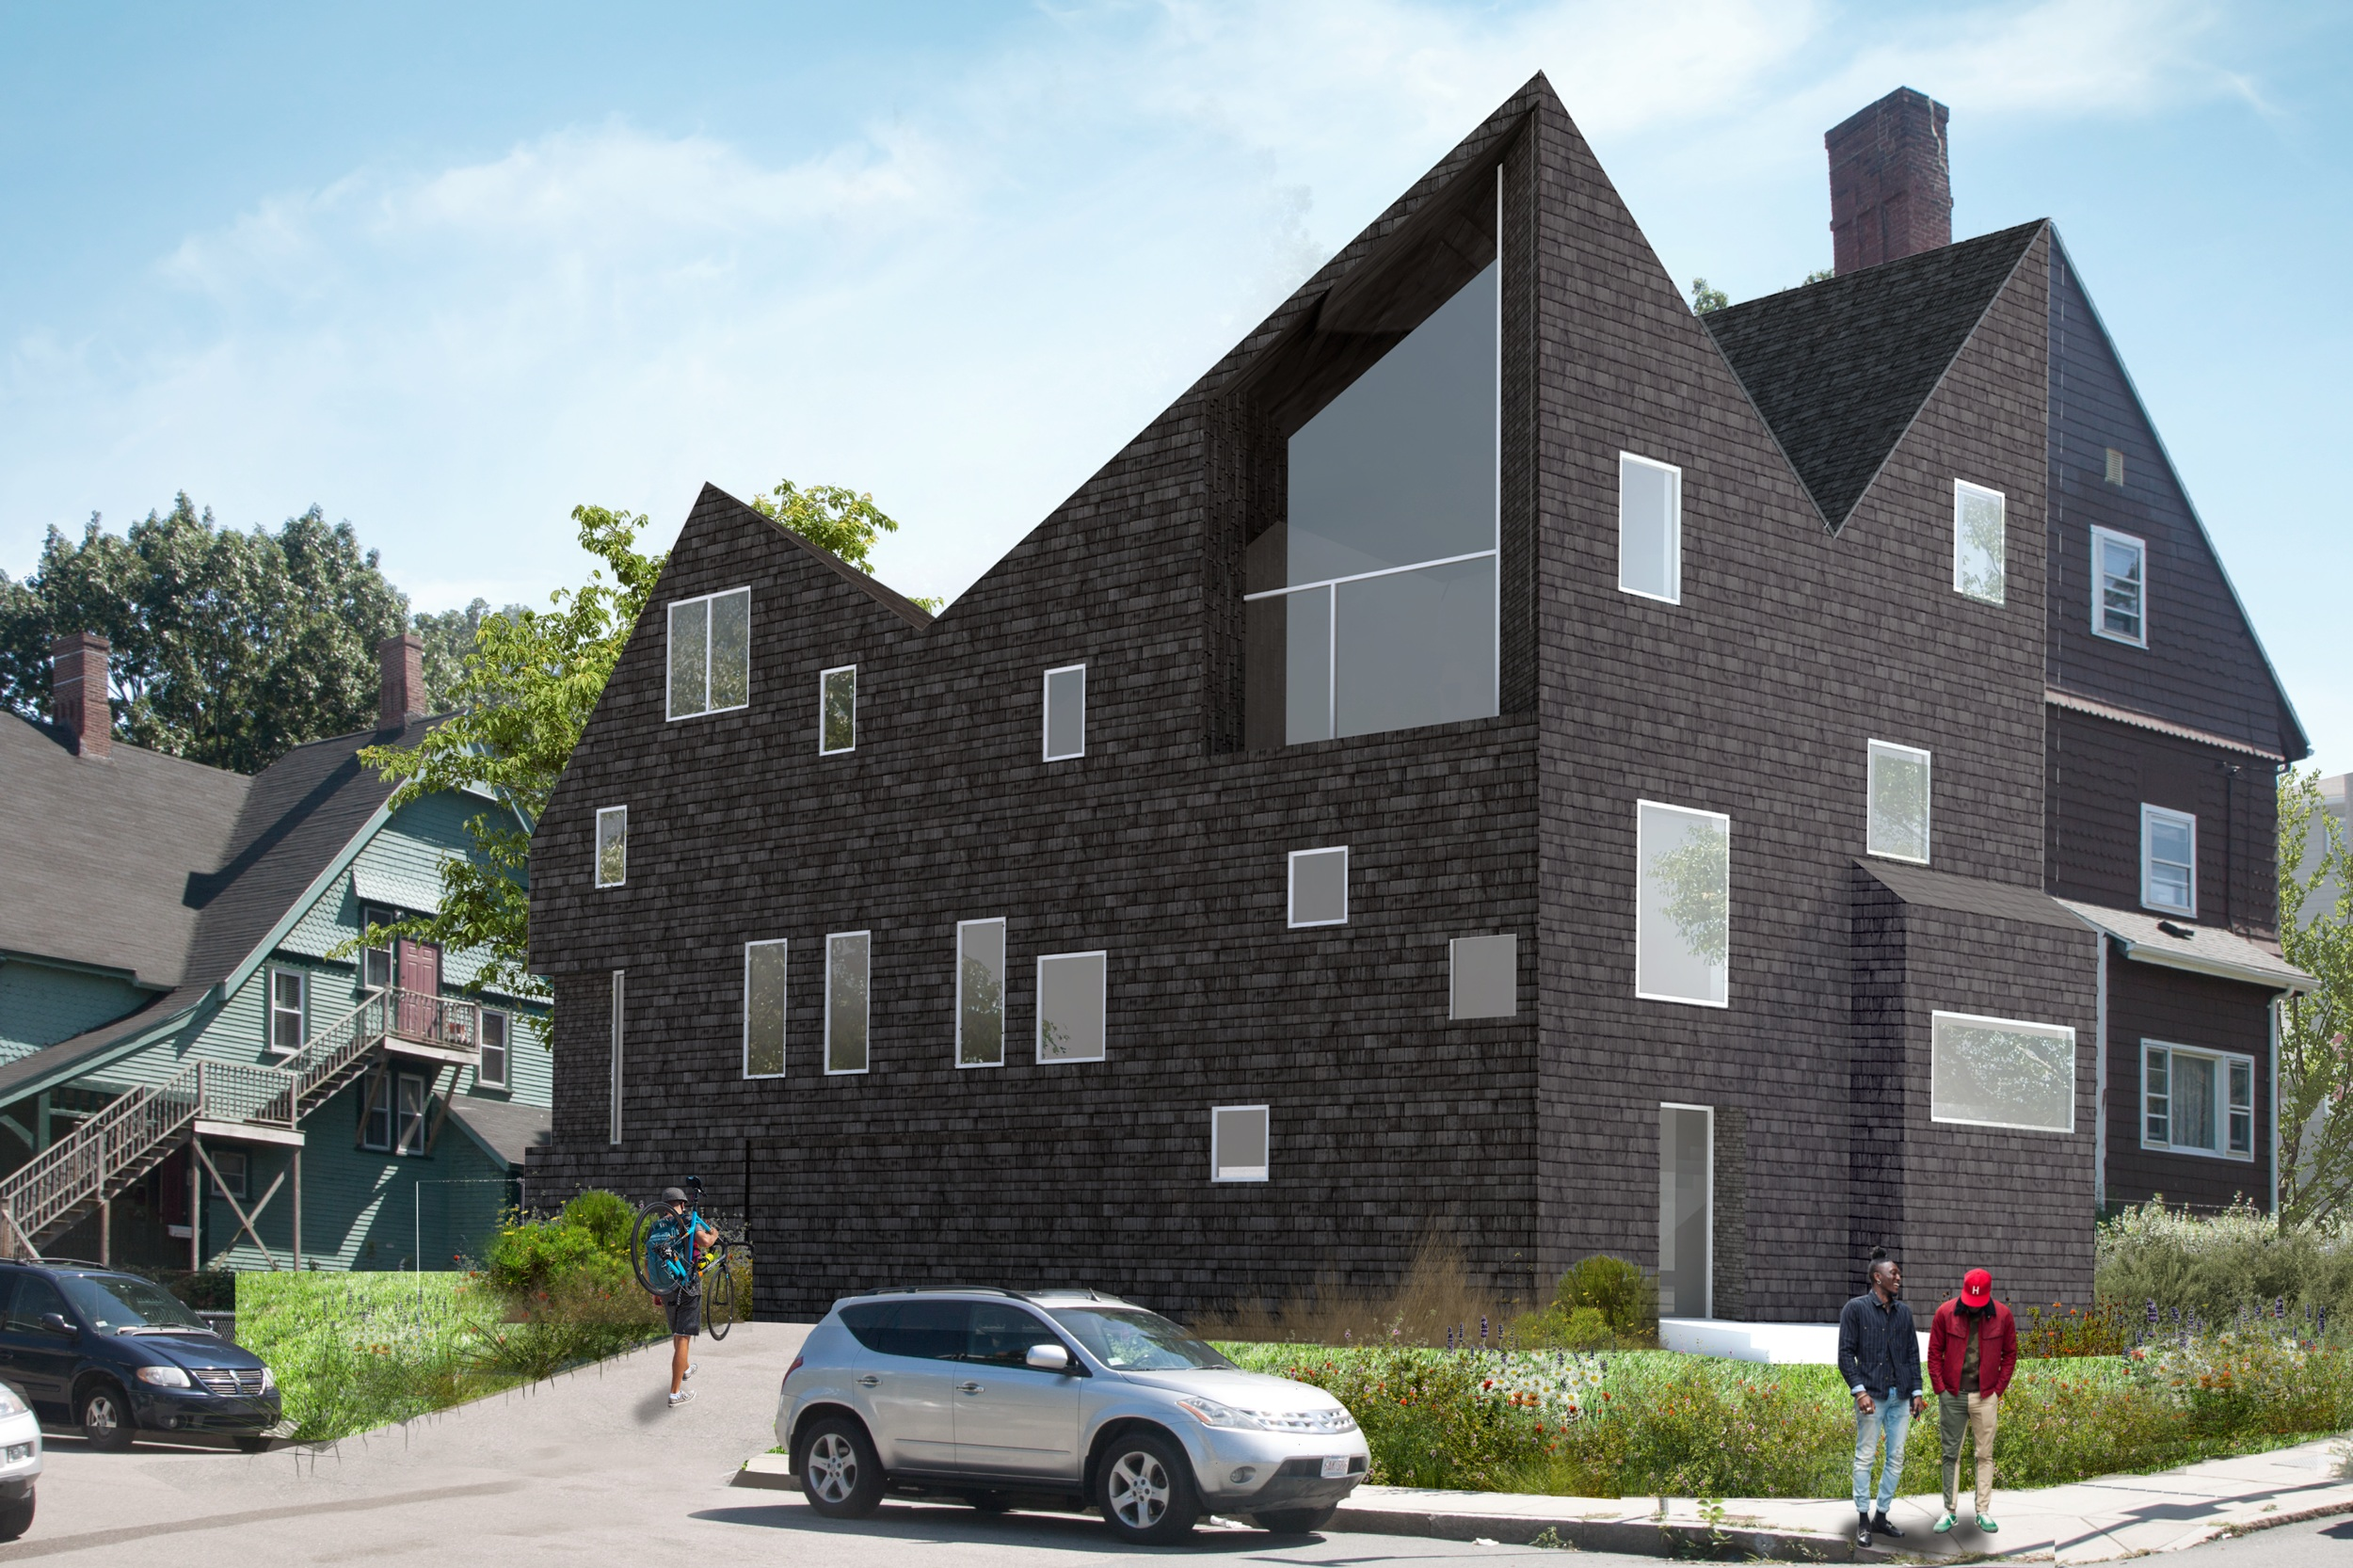 Trull Street Annex - A proposal for a new but familiar neighbor - creating new housing opportunities on the site of a previously fire-damaged property